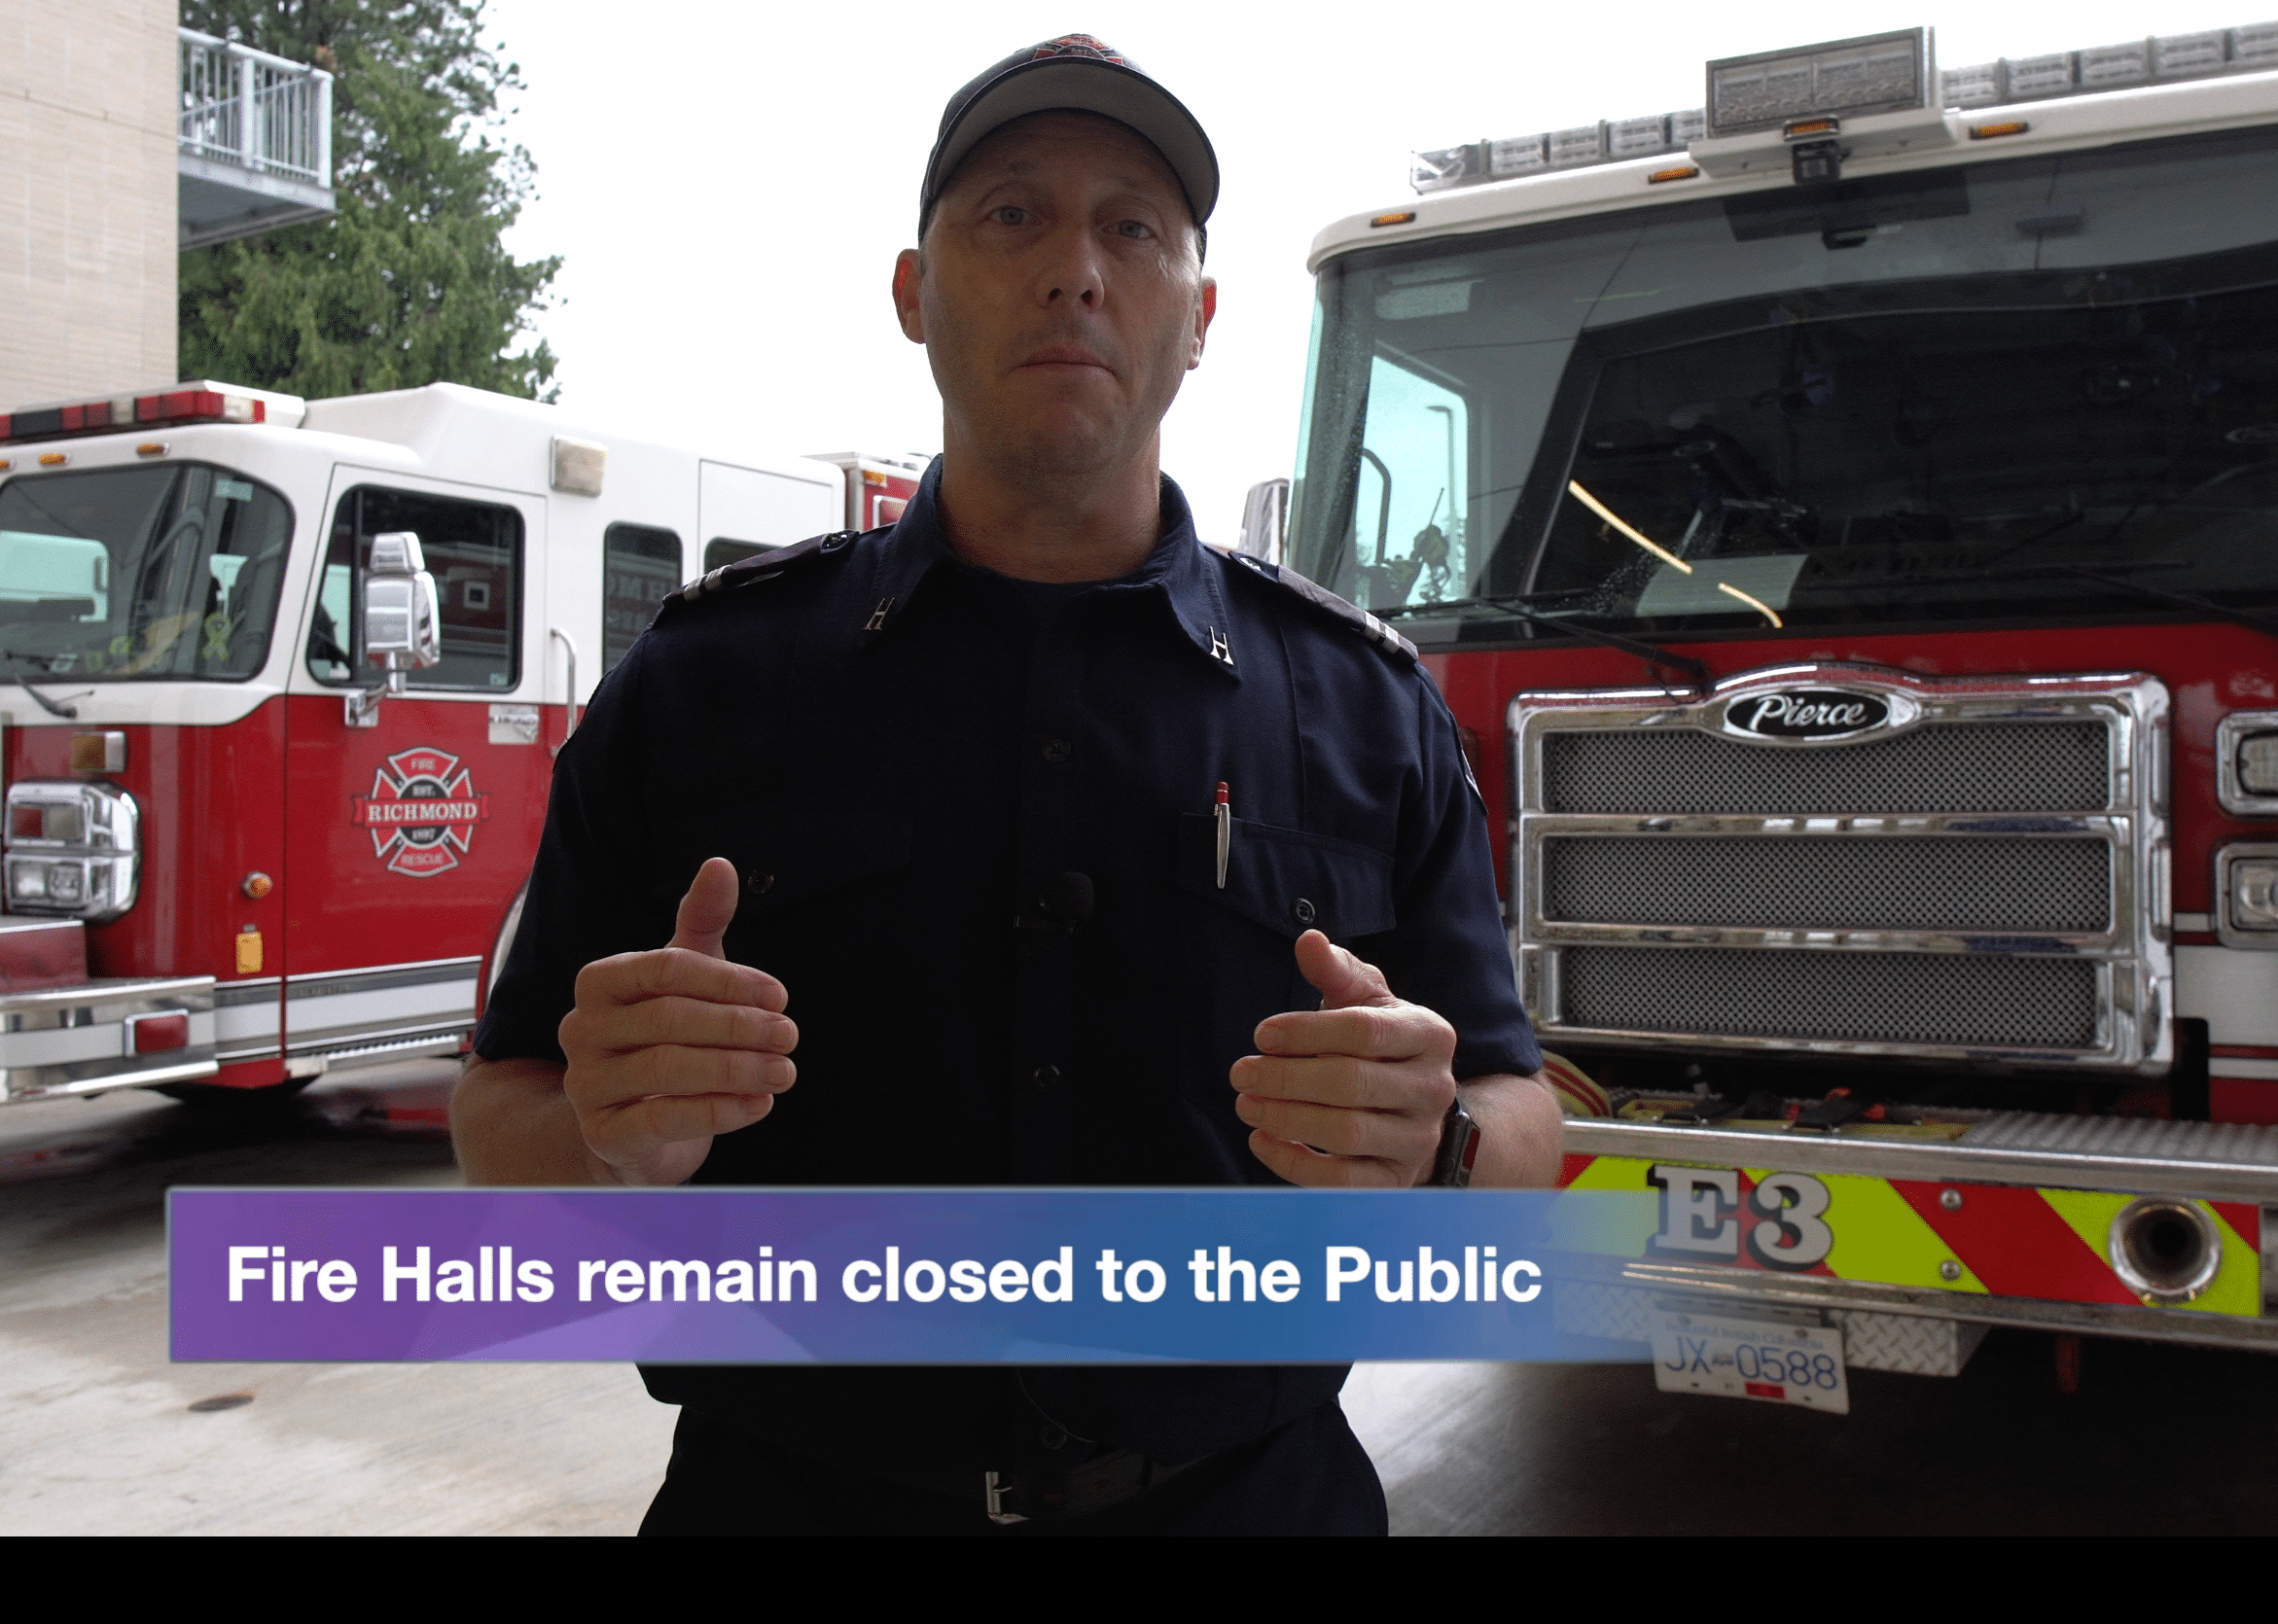 Vlog #8 – Fire Halls remain closed to the public